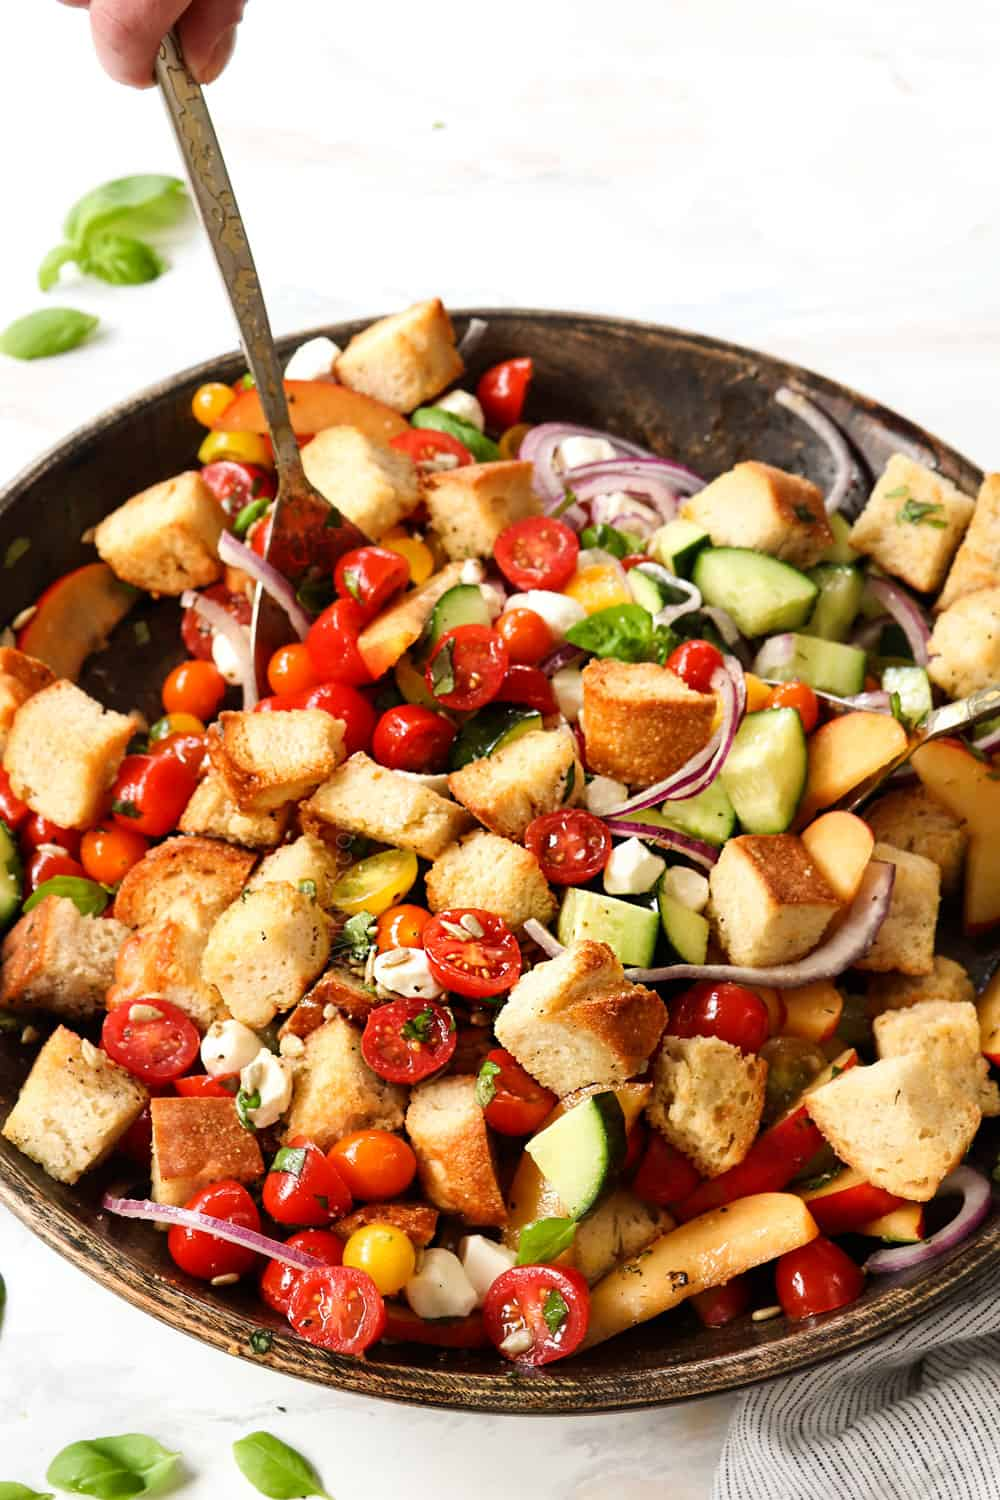 showing how to make Panzanella by tossing the bread, tomatoes and dressing in a wooden bowl